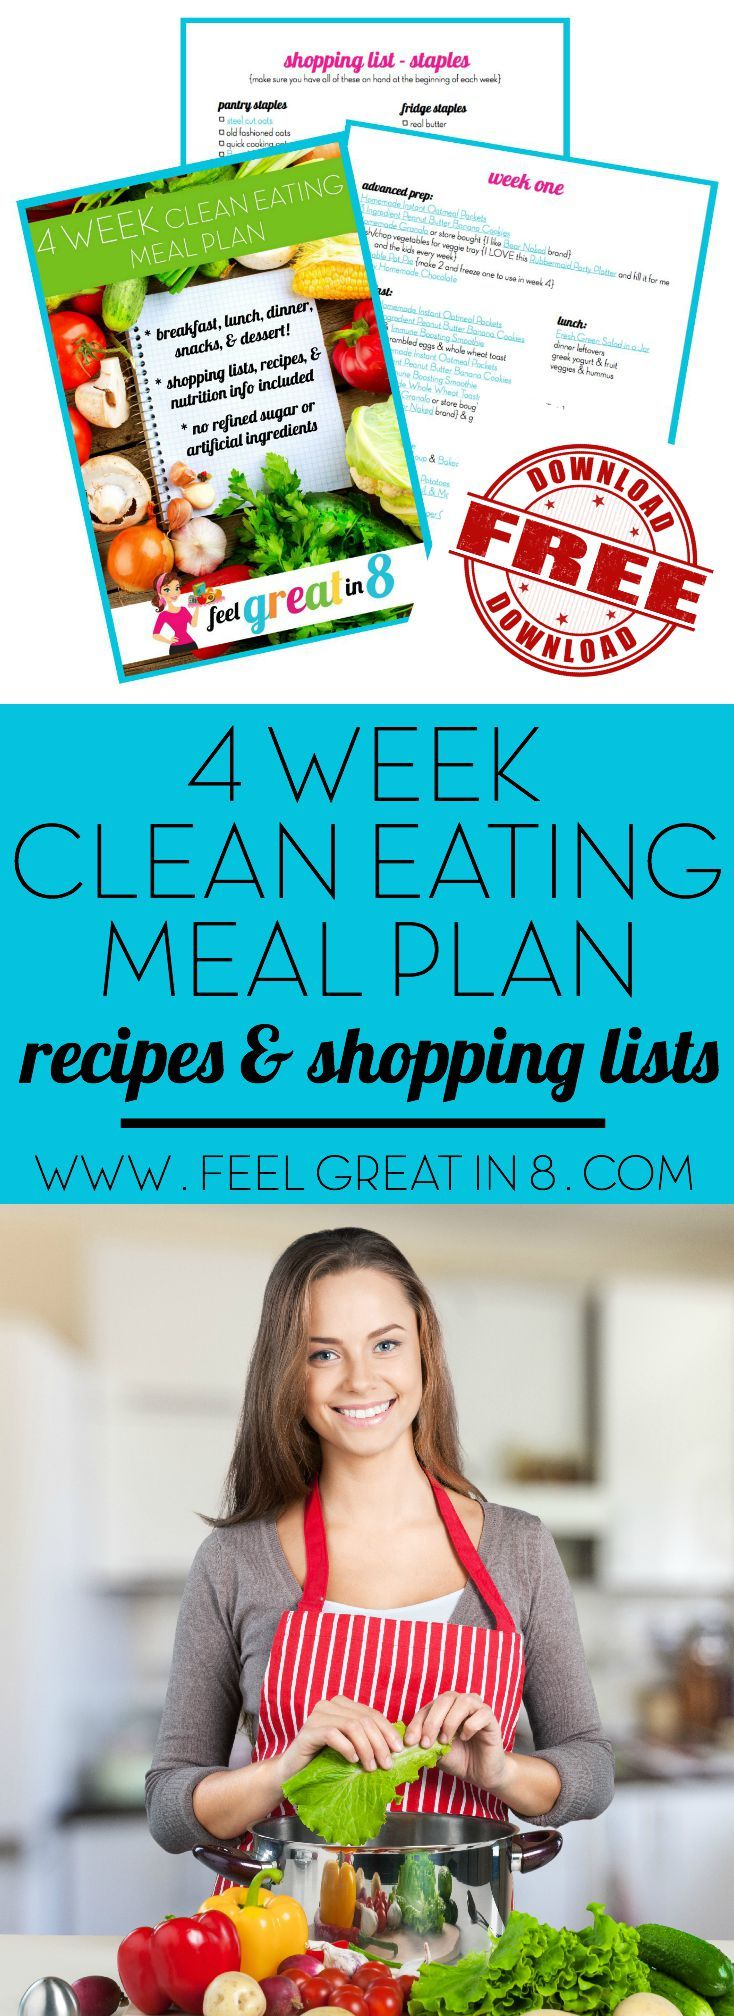 Free 4 Week Clean Eating Meal Plan! Includes recipes, nutrition info & calorie counts, and shopping lists. Everything you need to feed your family healthy real food meals, snacks, and dessert! | Feel Great in 8